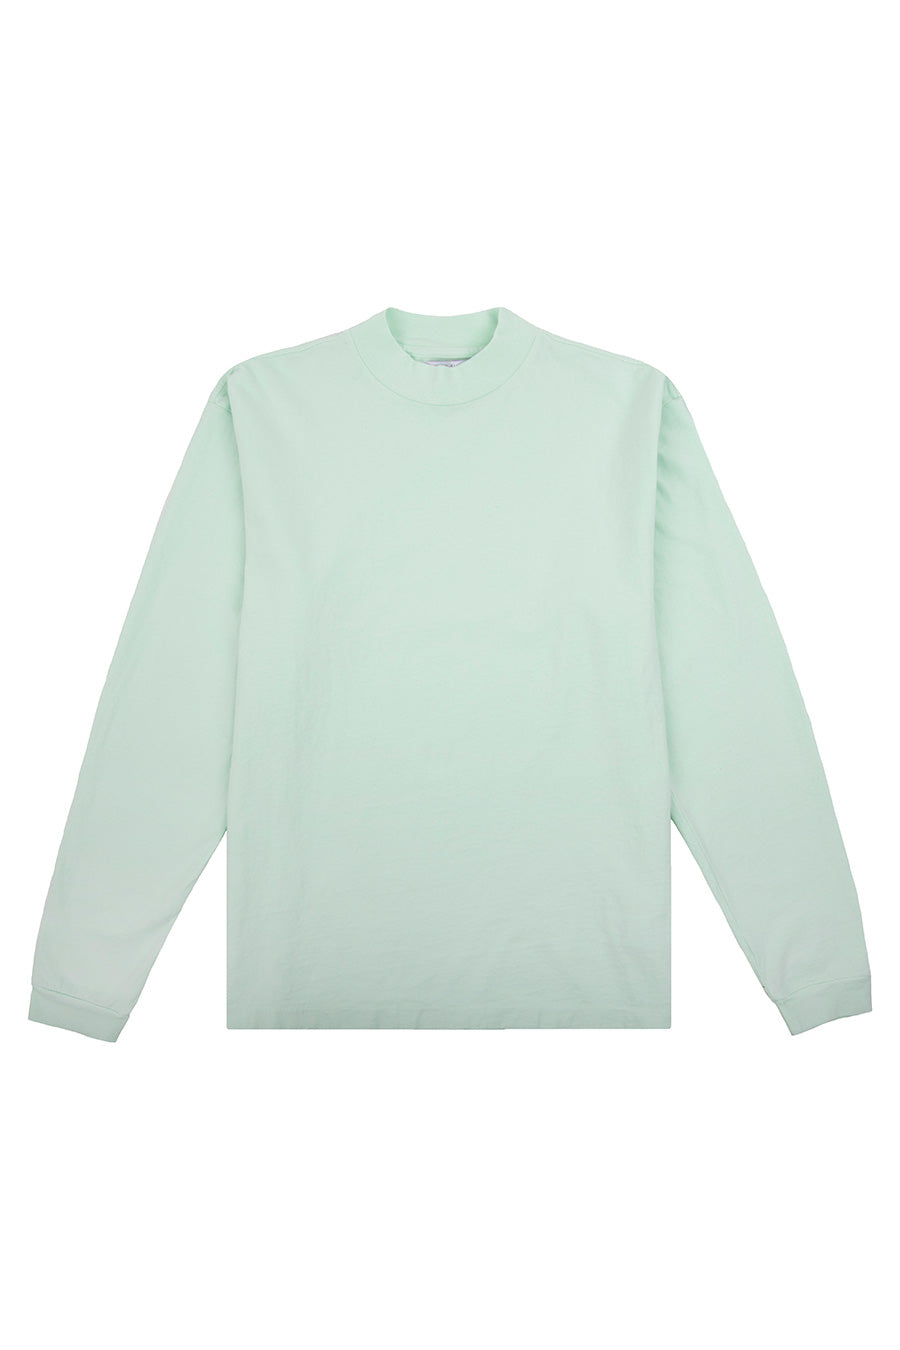 John Eliott -Mint 900s LS Mock T-Shirt | 1032 SPACE